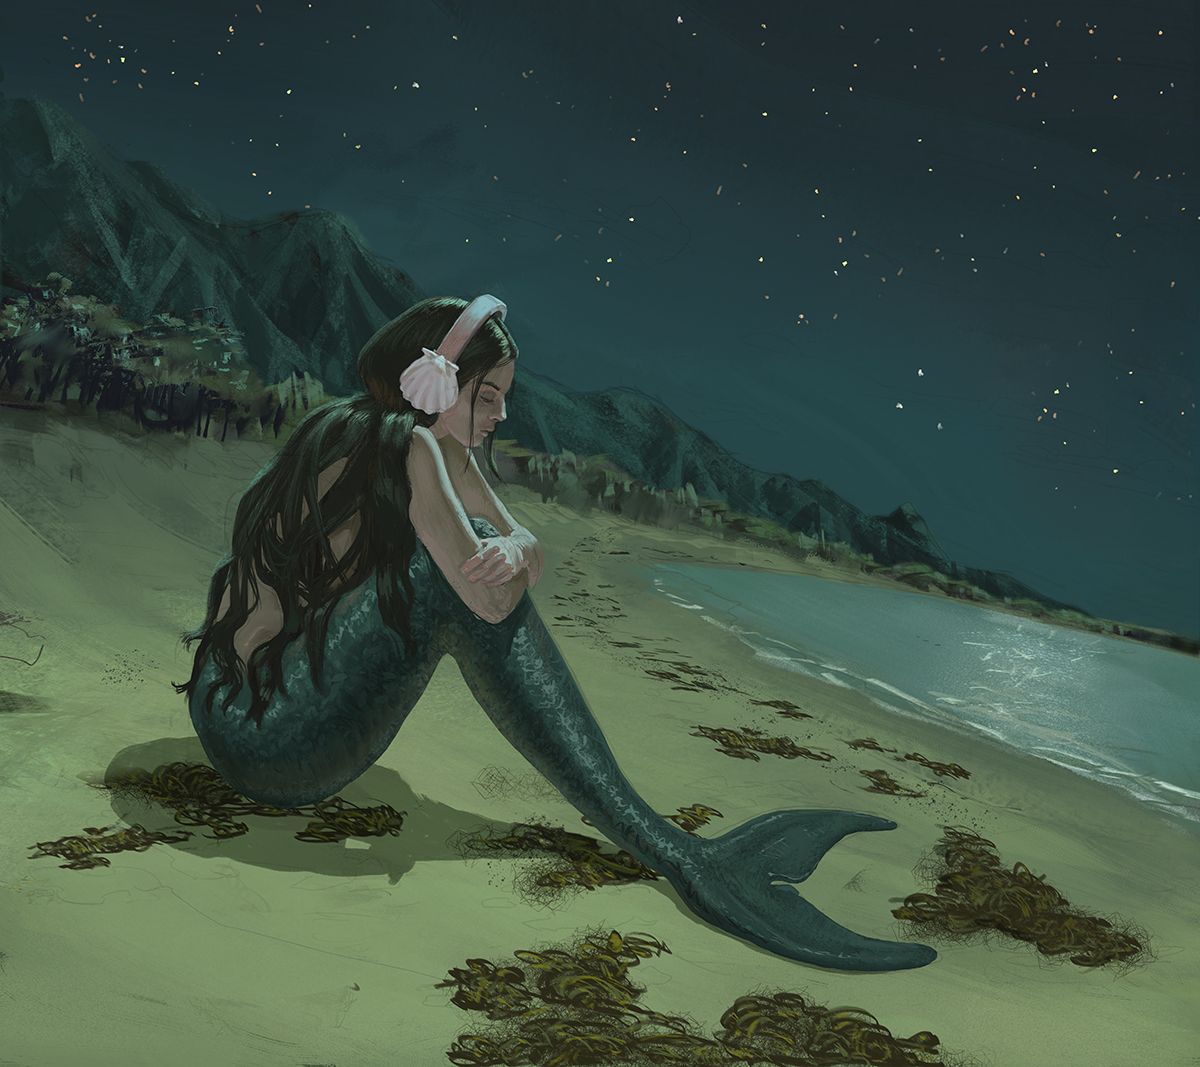 Sad_Mermaid4